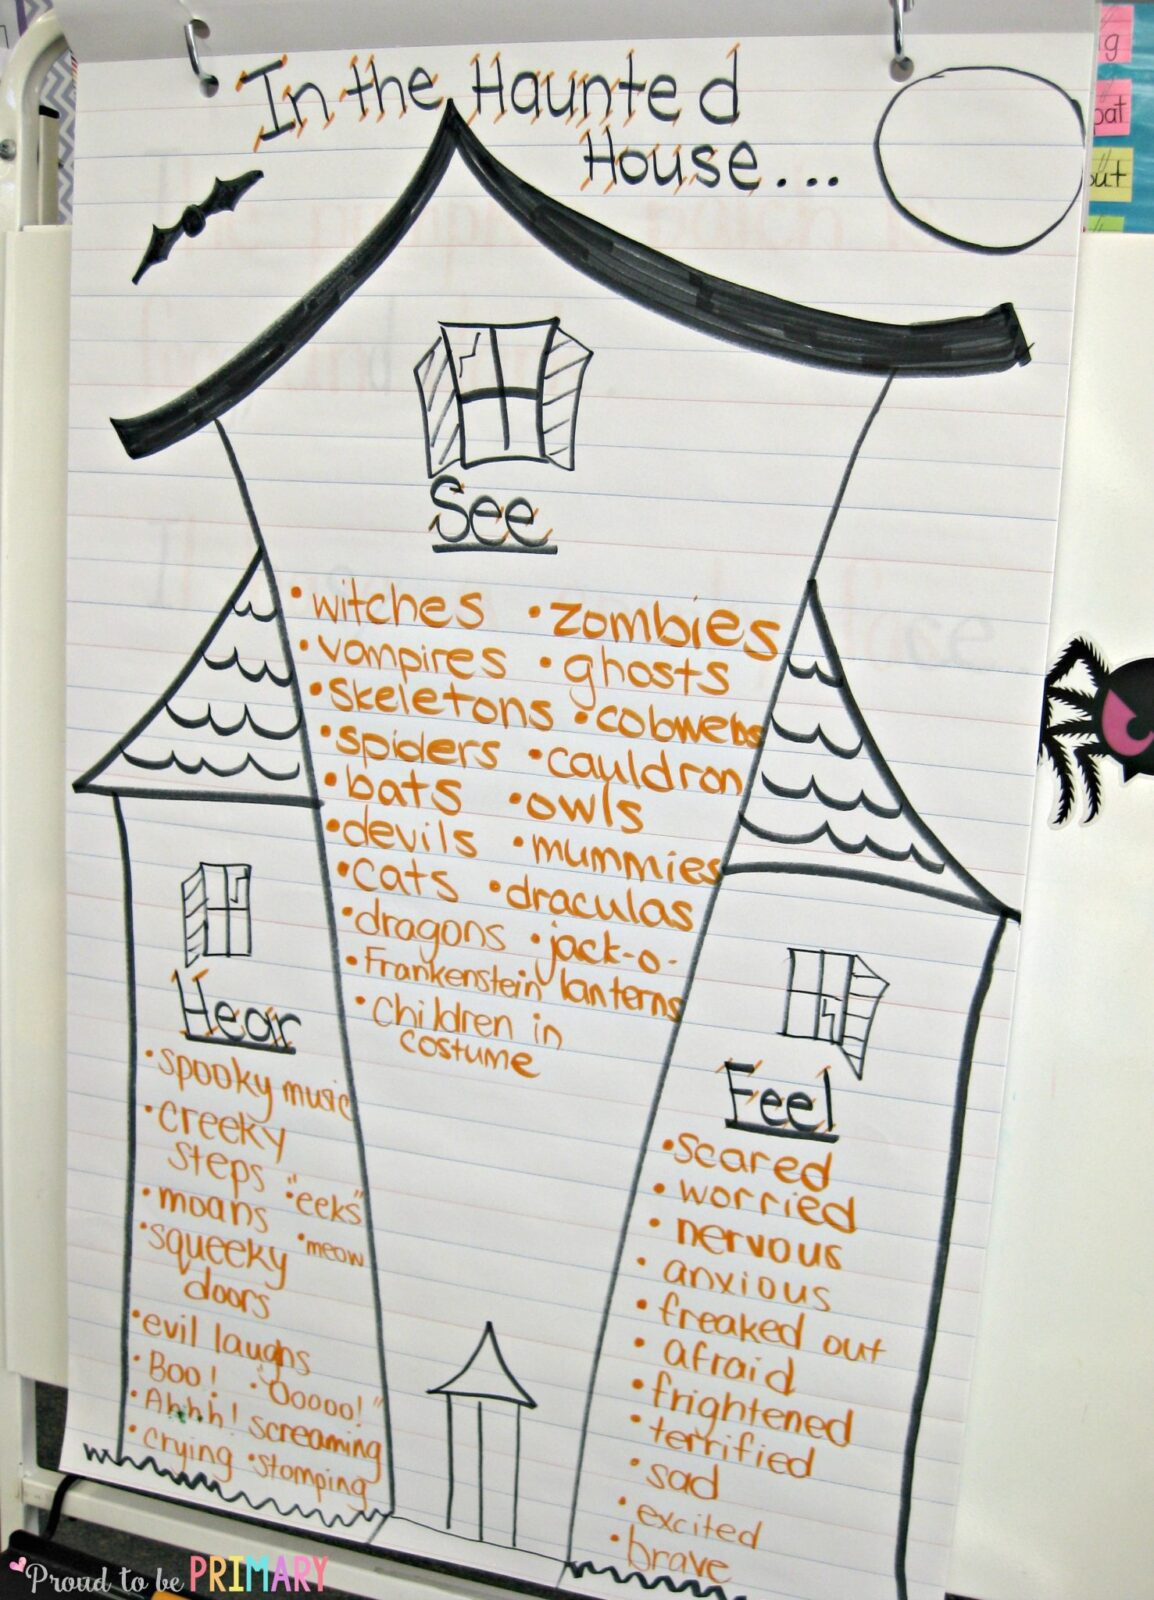 Halloween Spooky House Drawing.Halloween Writing Kids Will Scream About A Haunted House